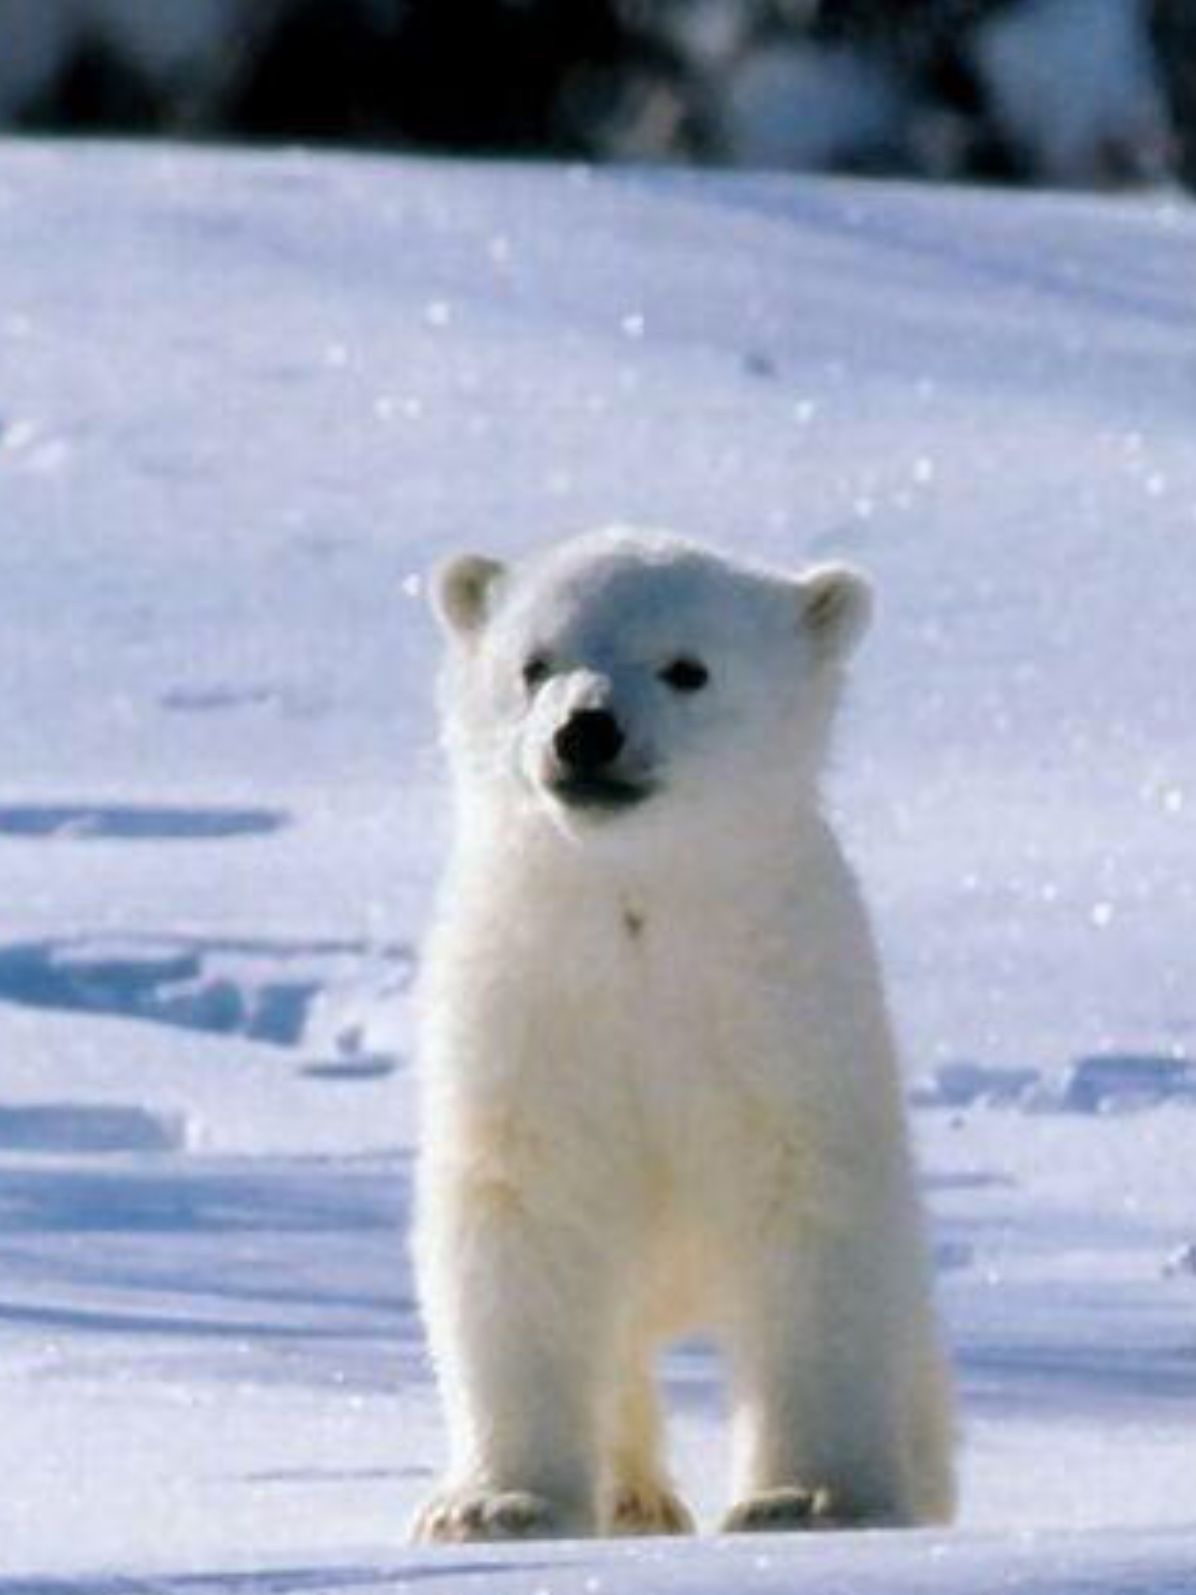 Photos Of Small Living Rooms Decorated: Small, Cute Polar Bear In The Glittering Snow!